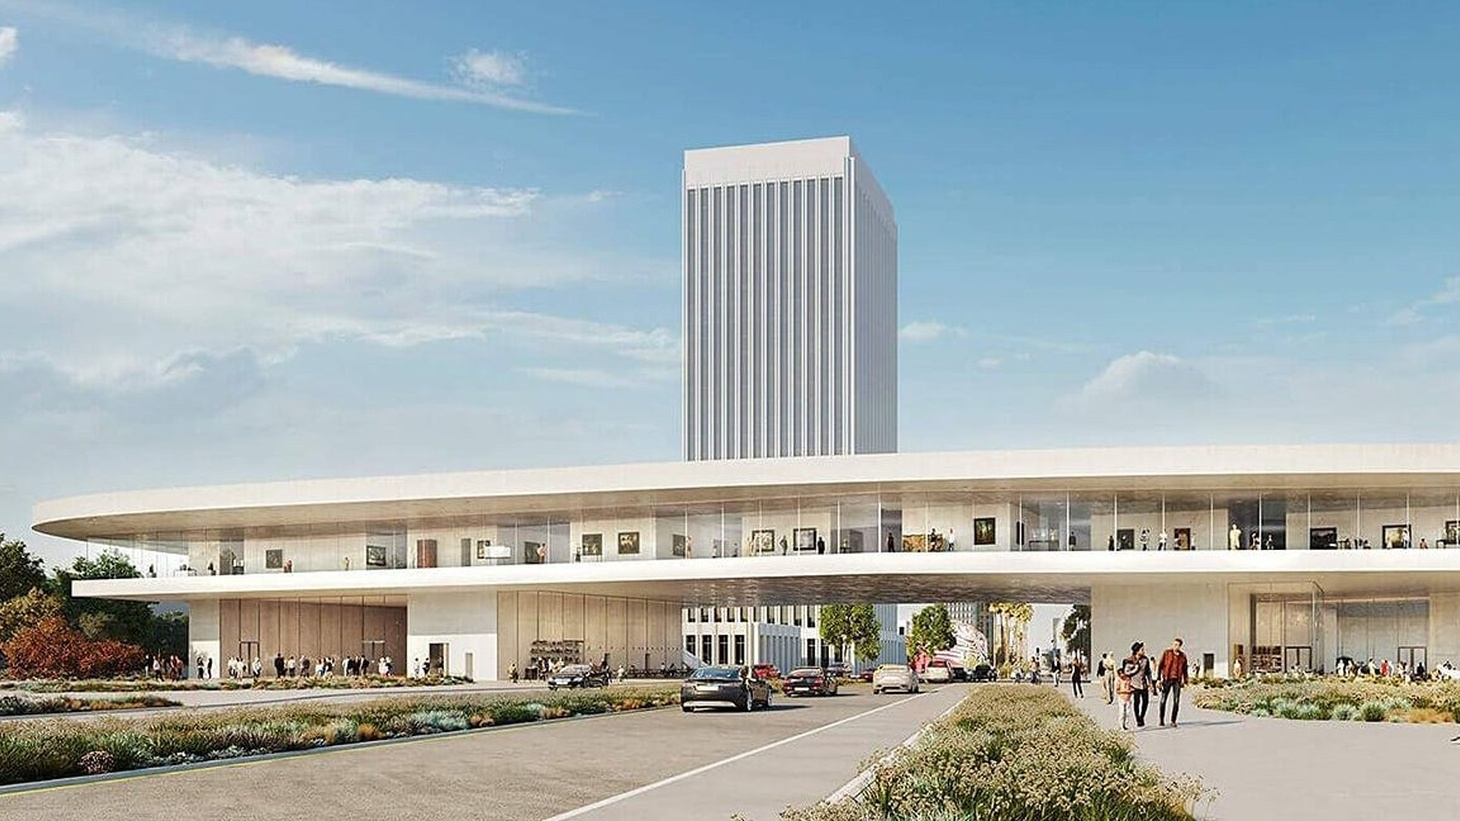 A rendering of the Peter Zumthor design for LACMA, with the gallery spanning Wilshire Boulevard.